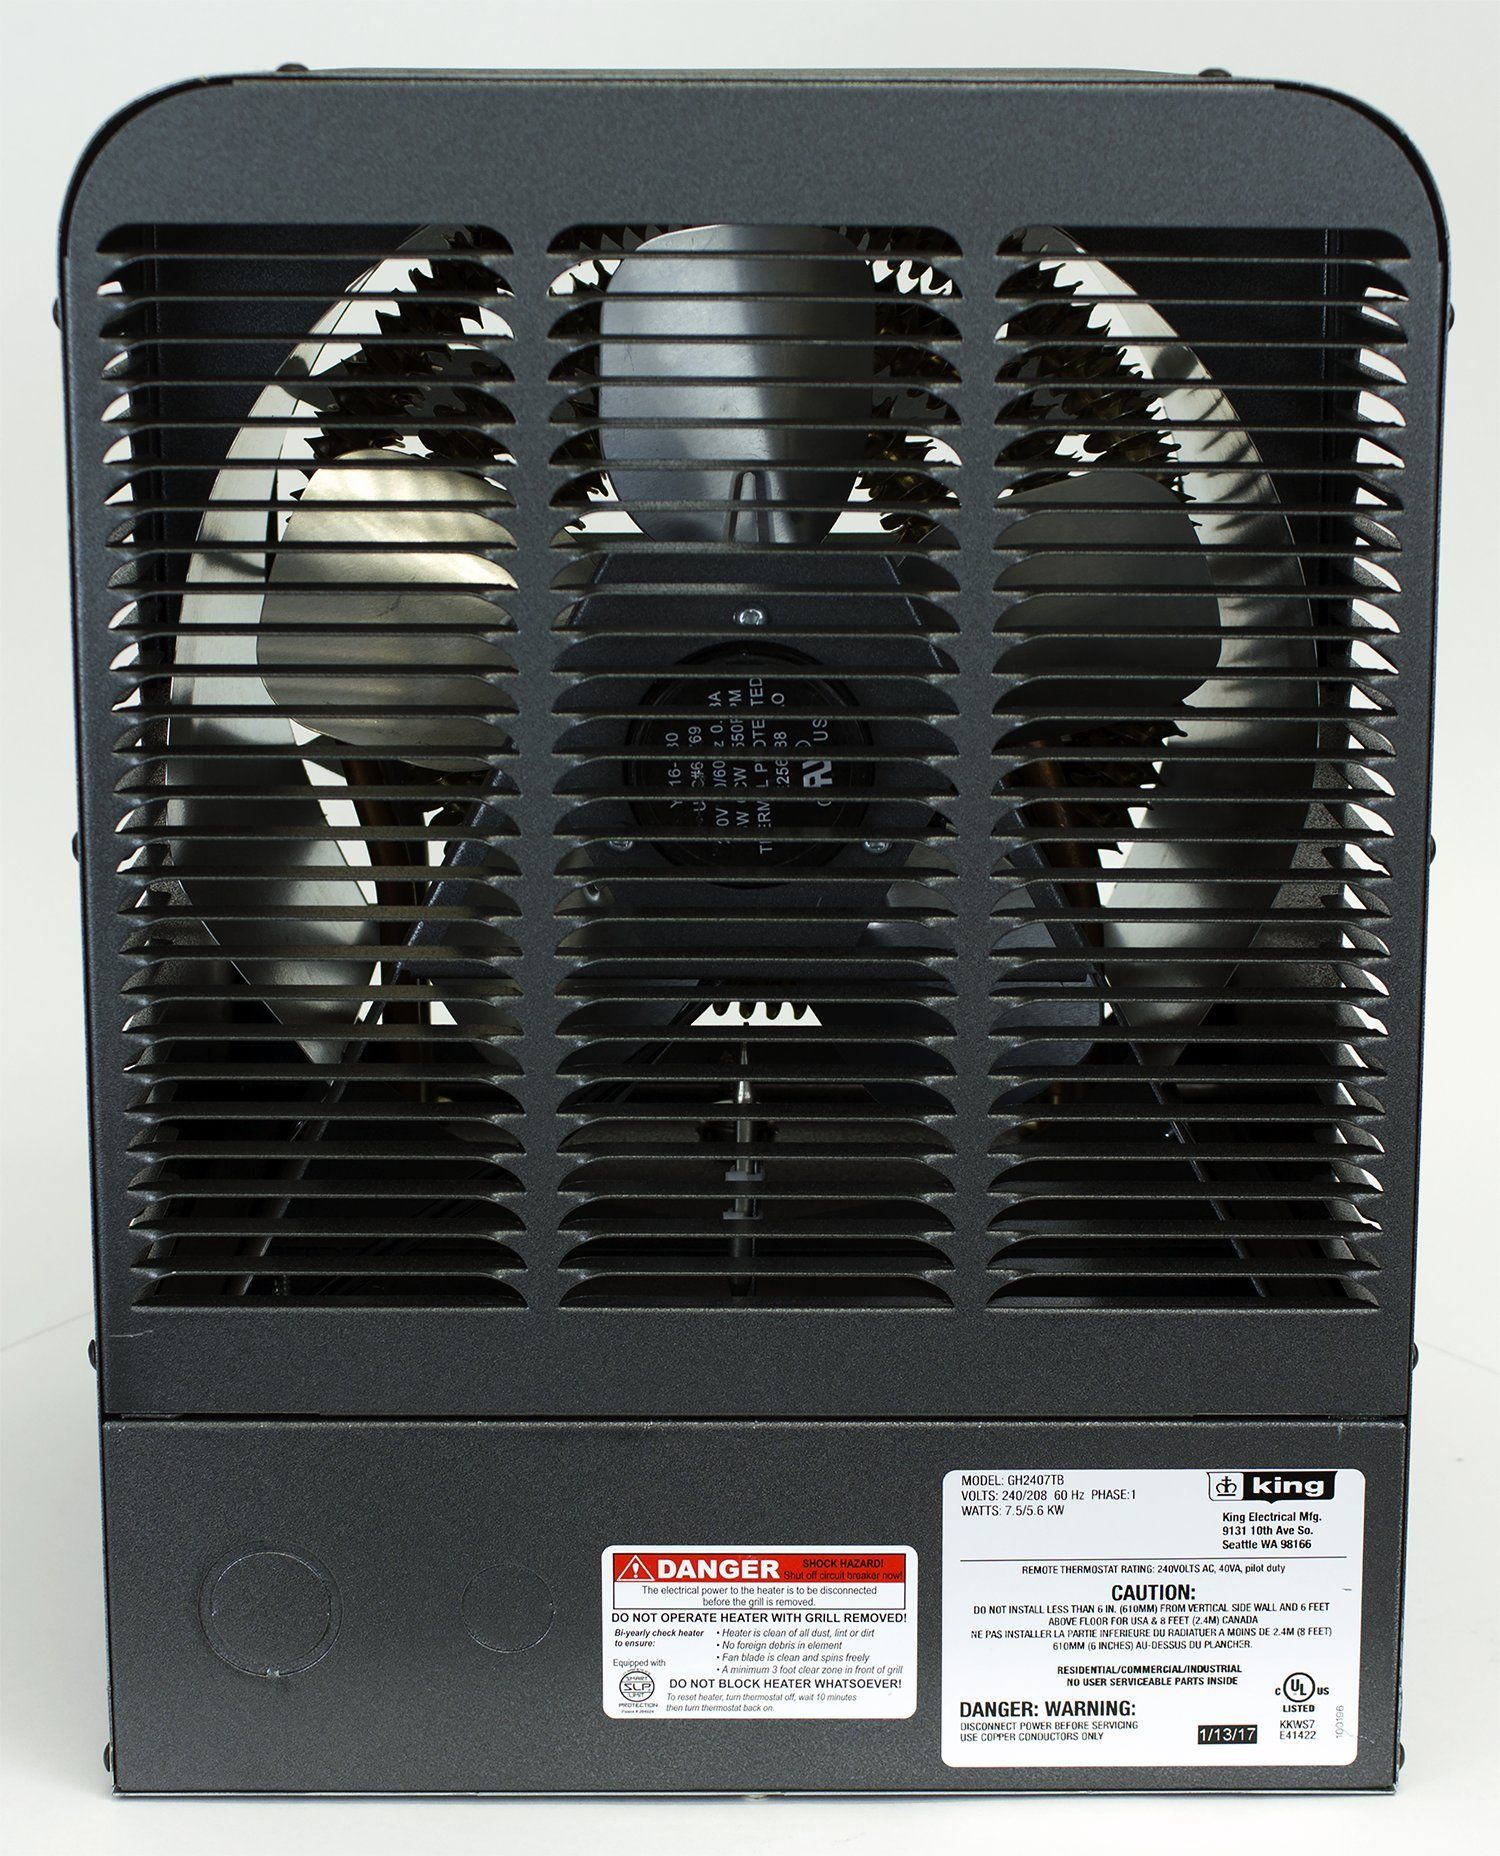 King Electric Gh2407tb 240v 7500w Garage Heater With Bracket And Thermostat Gray Click On The Image For Additional Garage Heater Space Heater Space Heaters